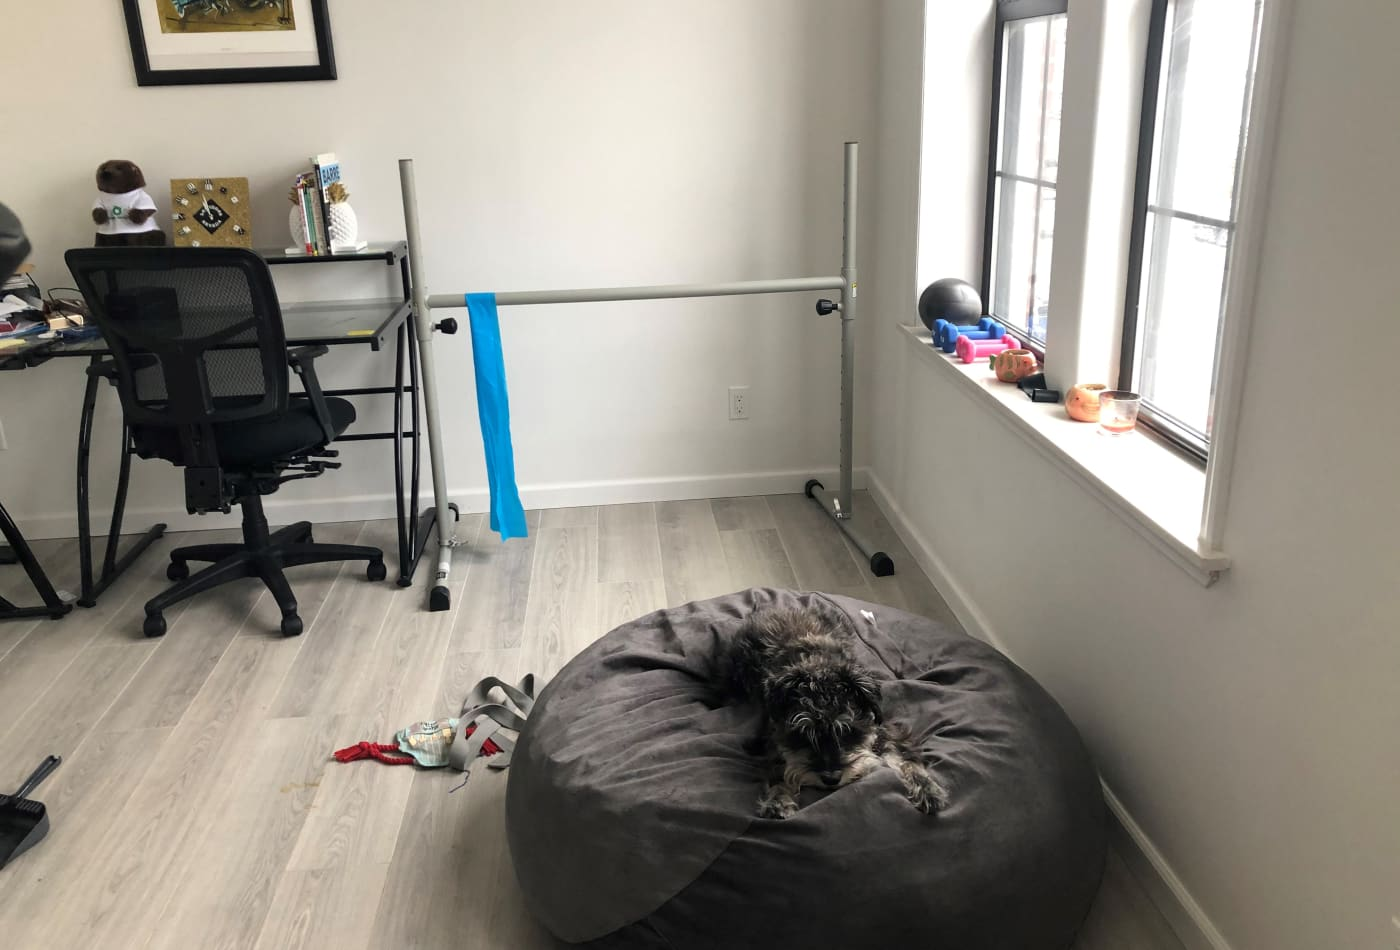 Reyna Gobel's basic home fitness center, workspace, and canine co-worker.